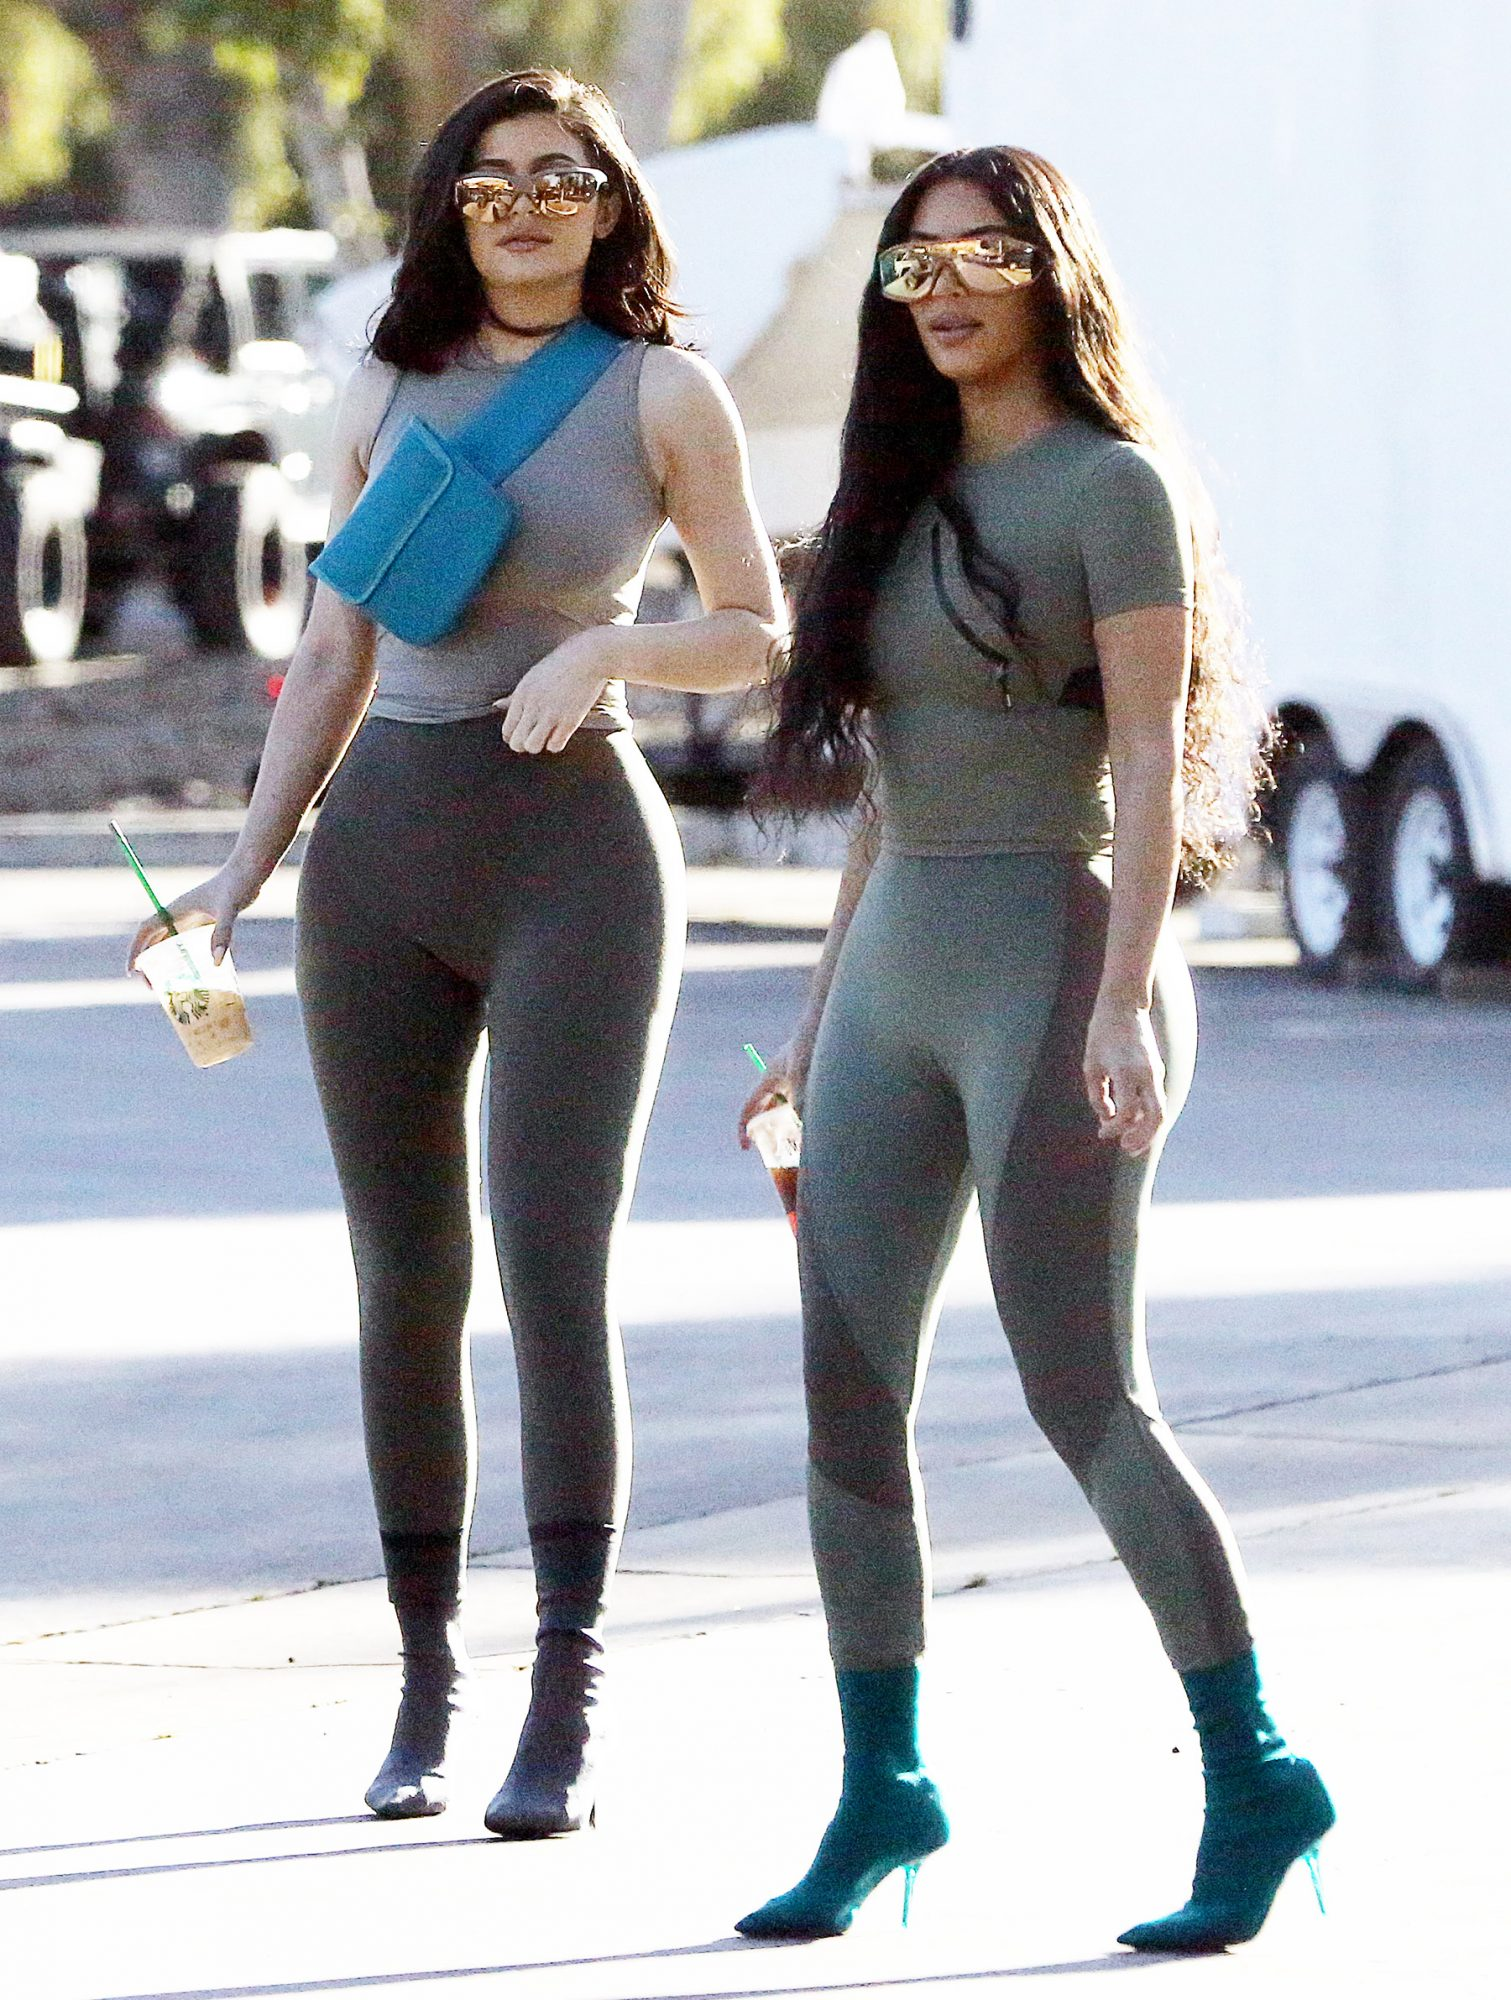 PREMIUM EXCLUSIVE Kim Kardashian and Kylie Jenner striking in tights